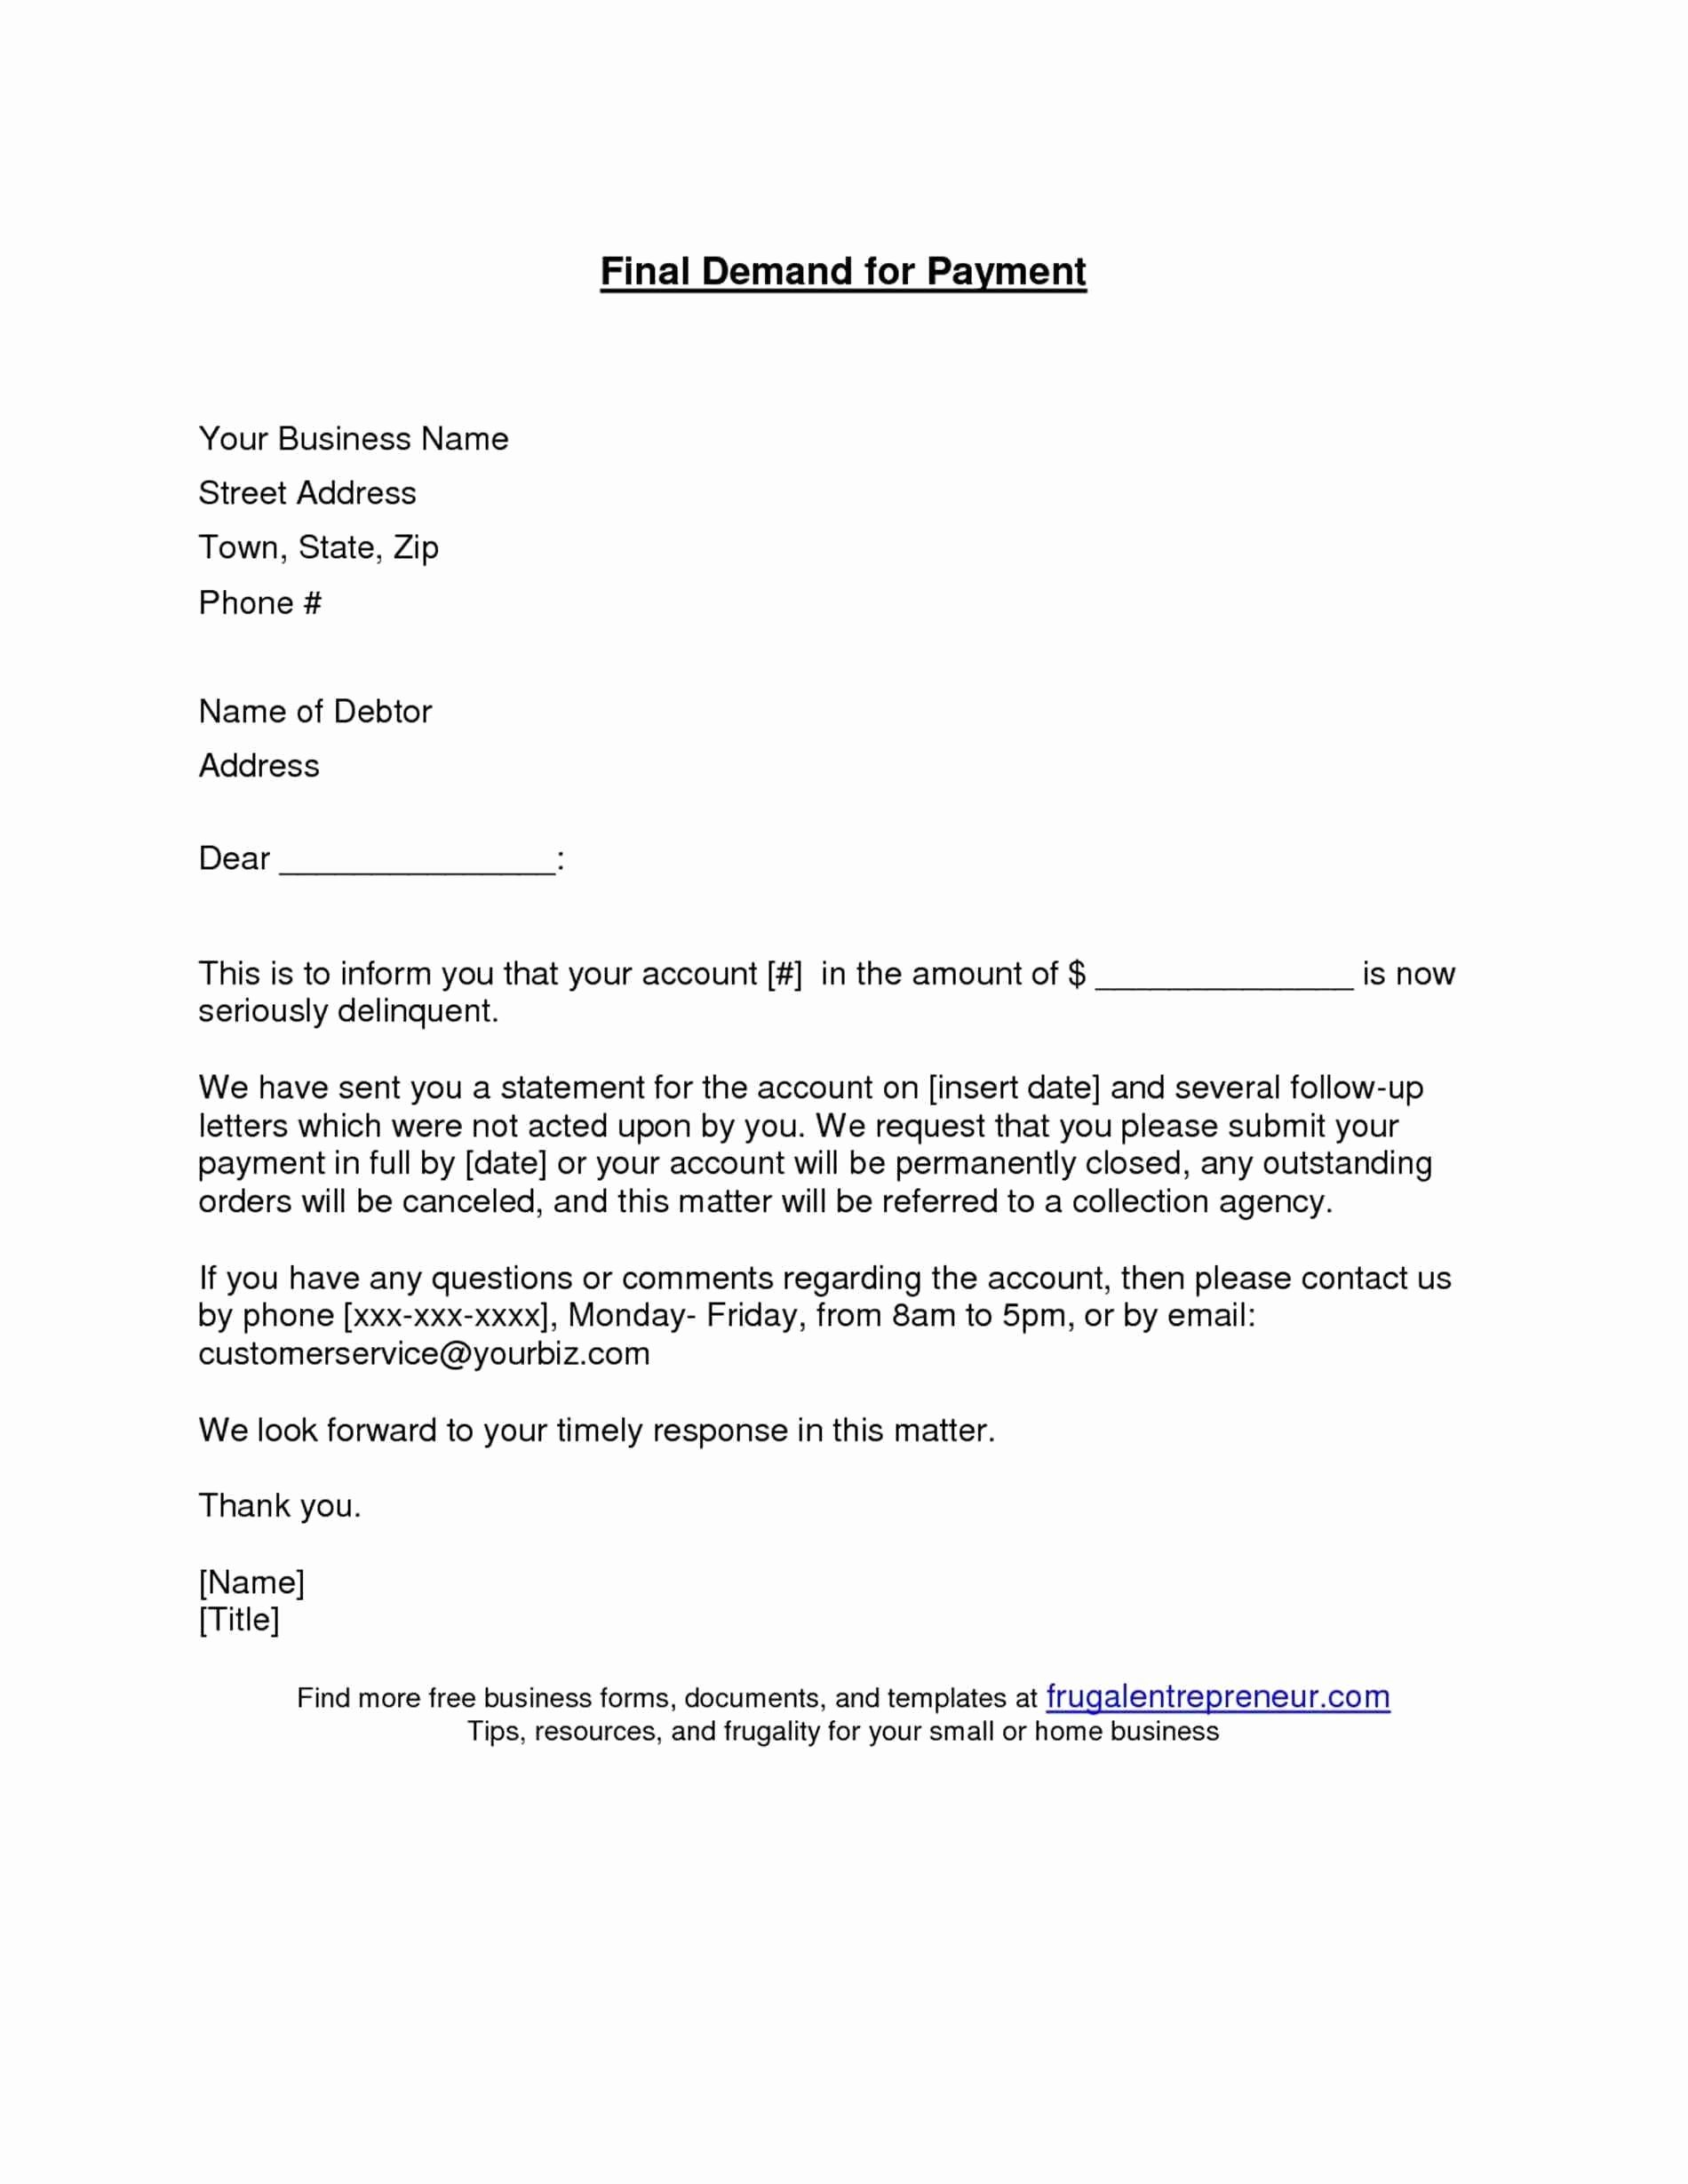 Letter Of Demand Template Unique Outstanding Payment Letter Template Download